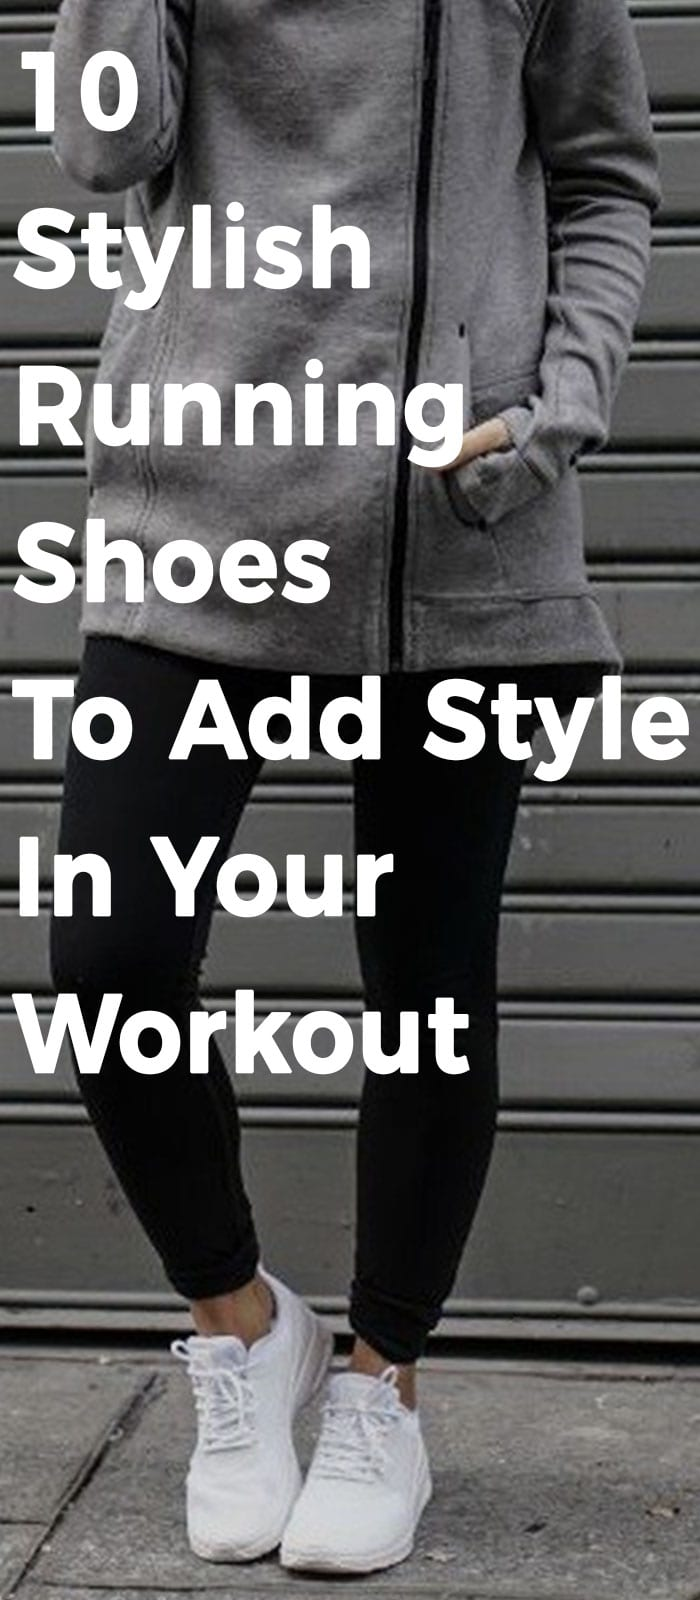 10 Stylish Running Shoes To Add Style In Your Workout